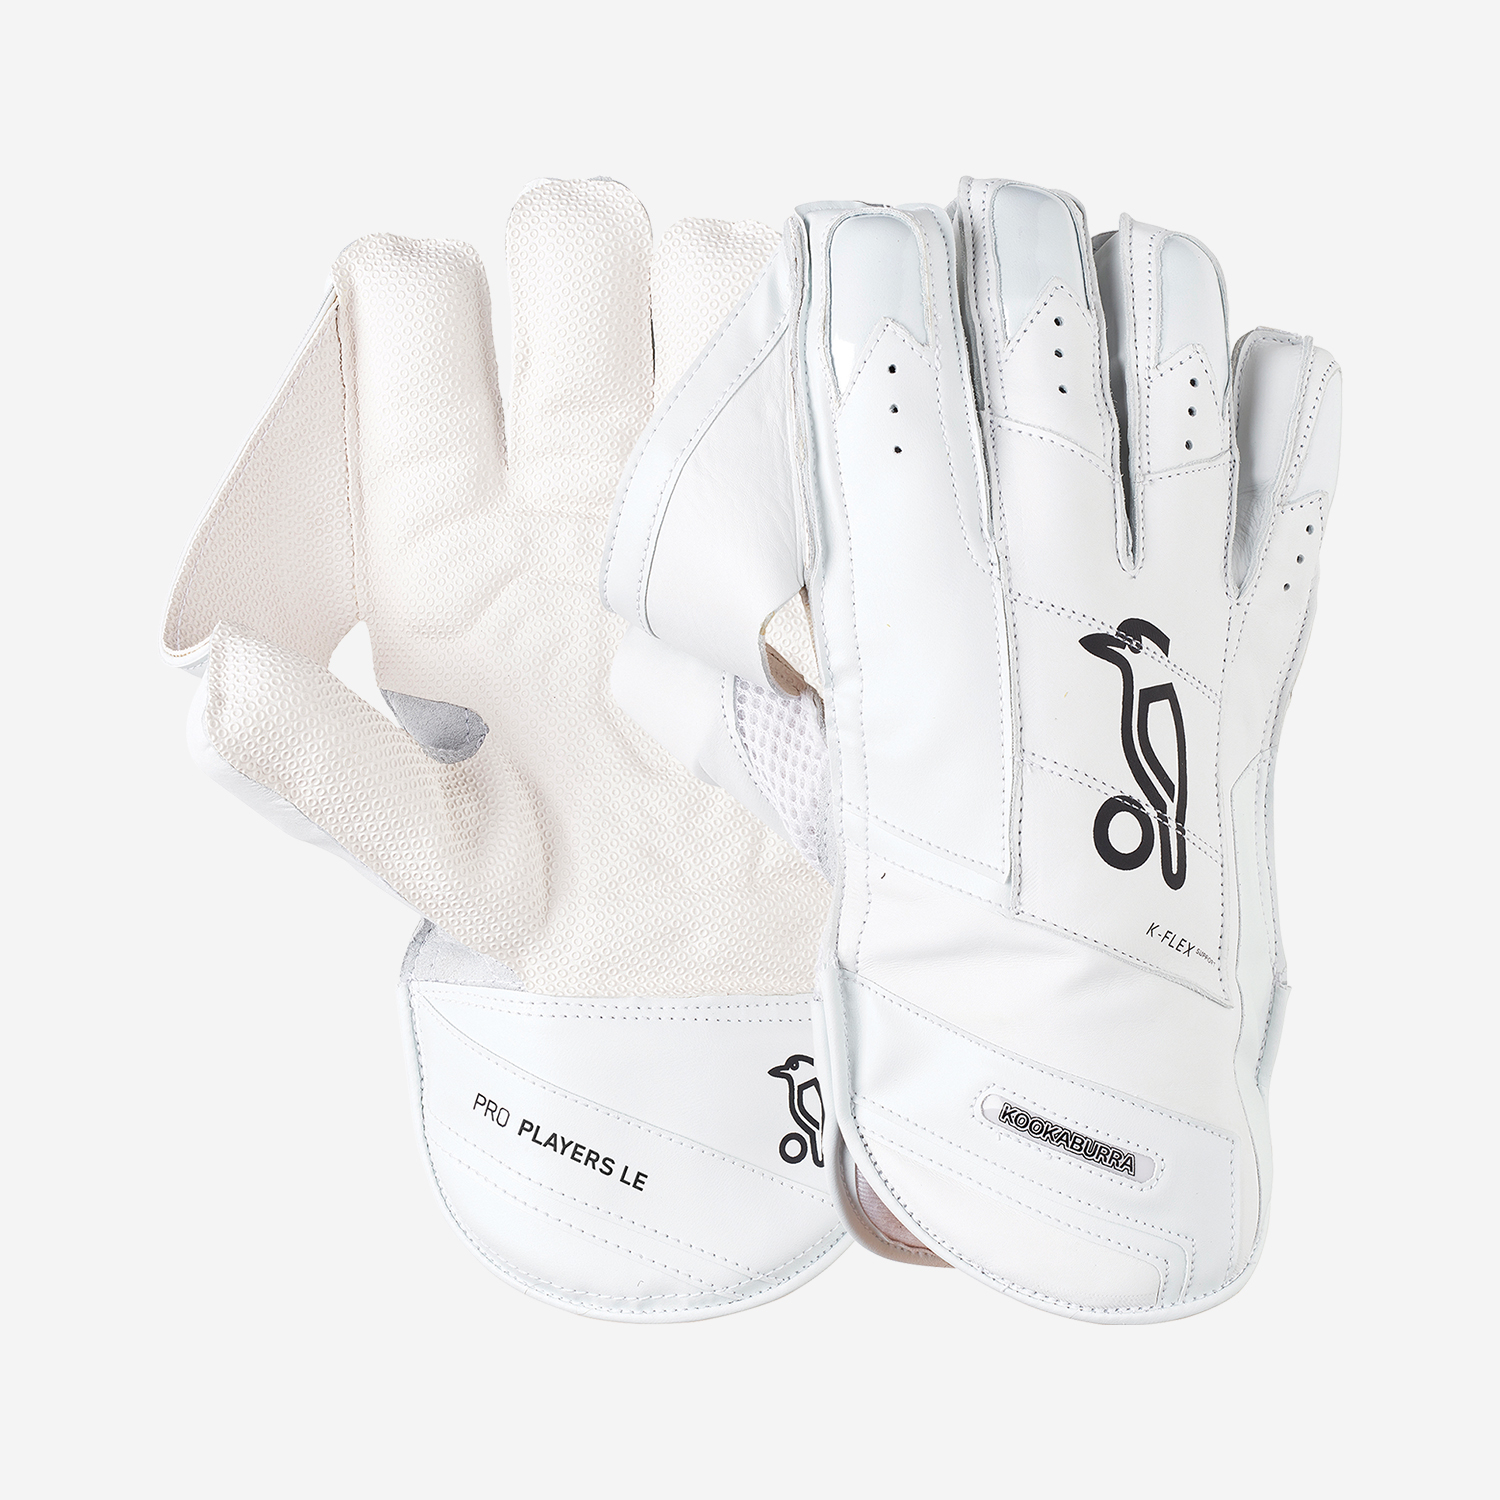 Pro Players LE Wicket Keeping Gloves